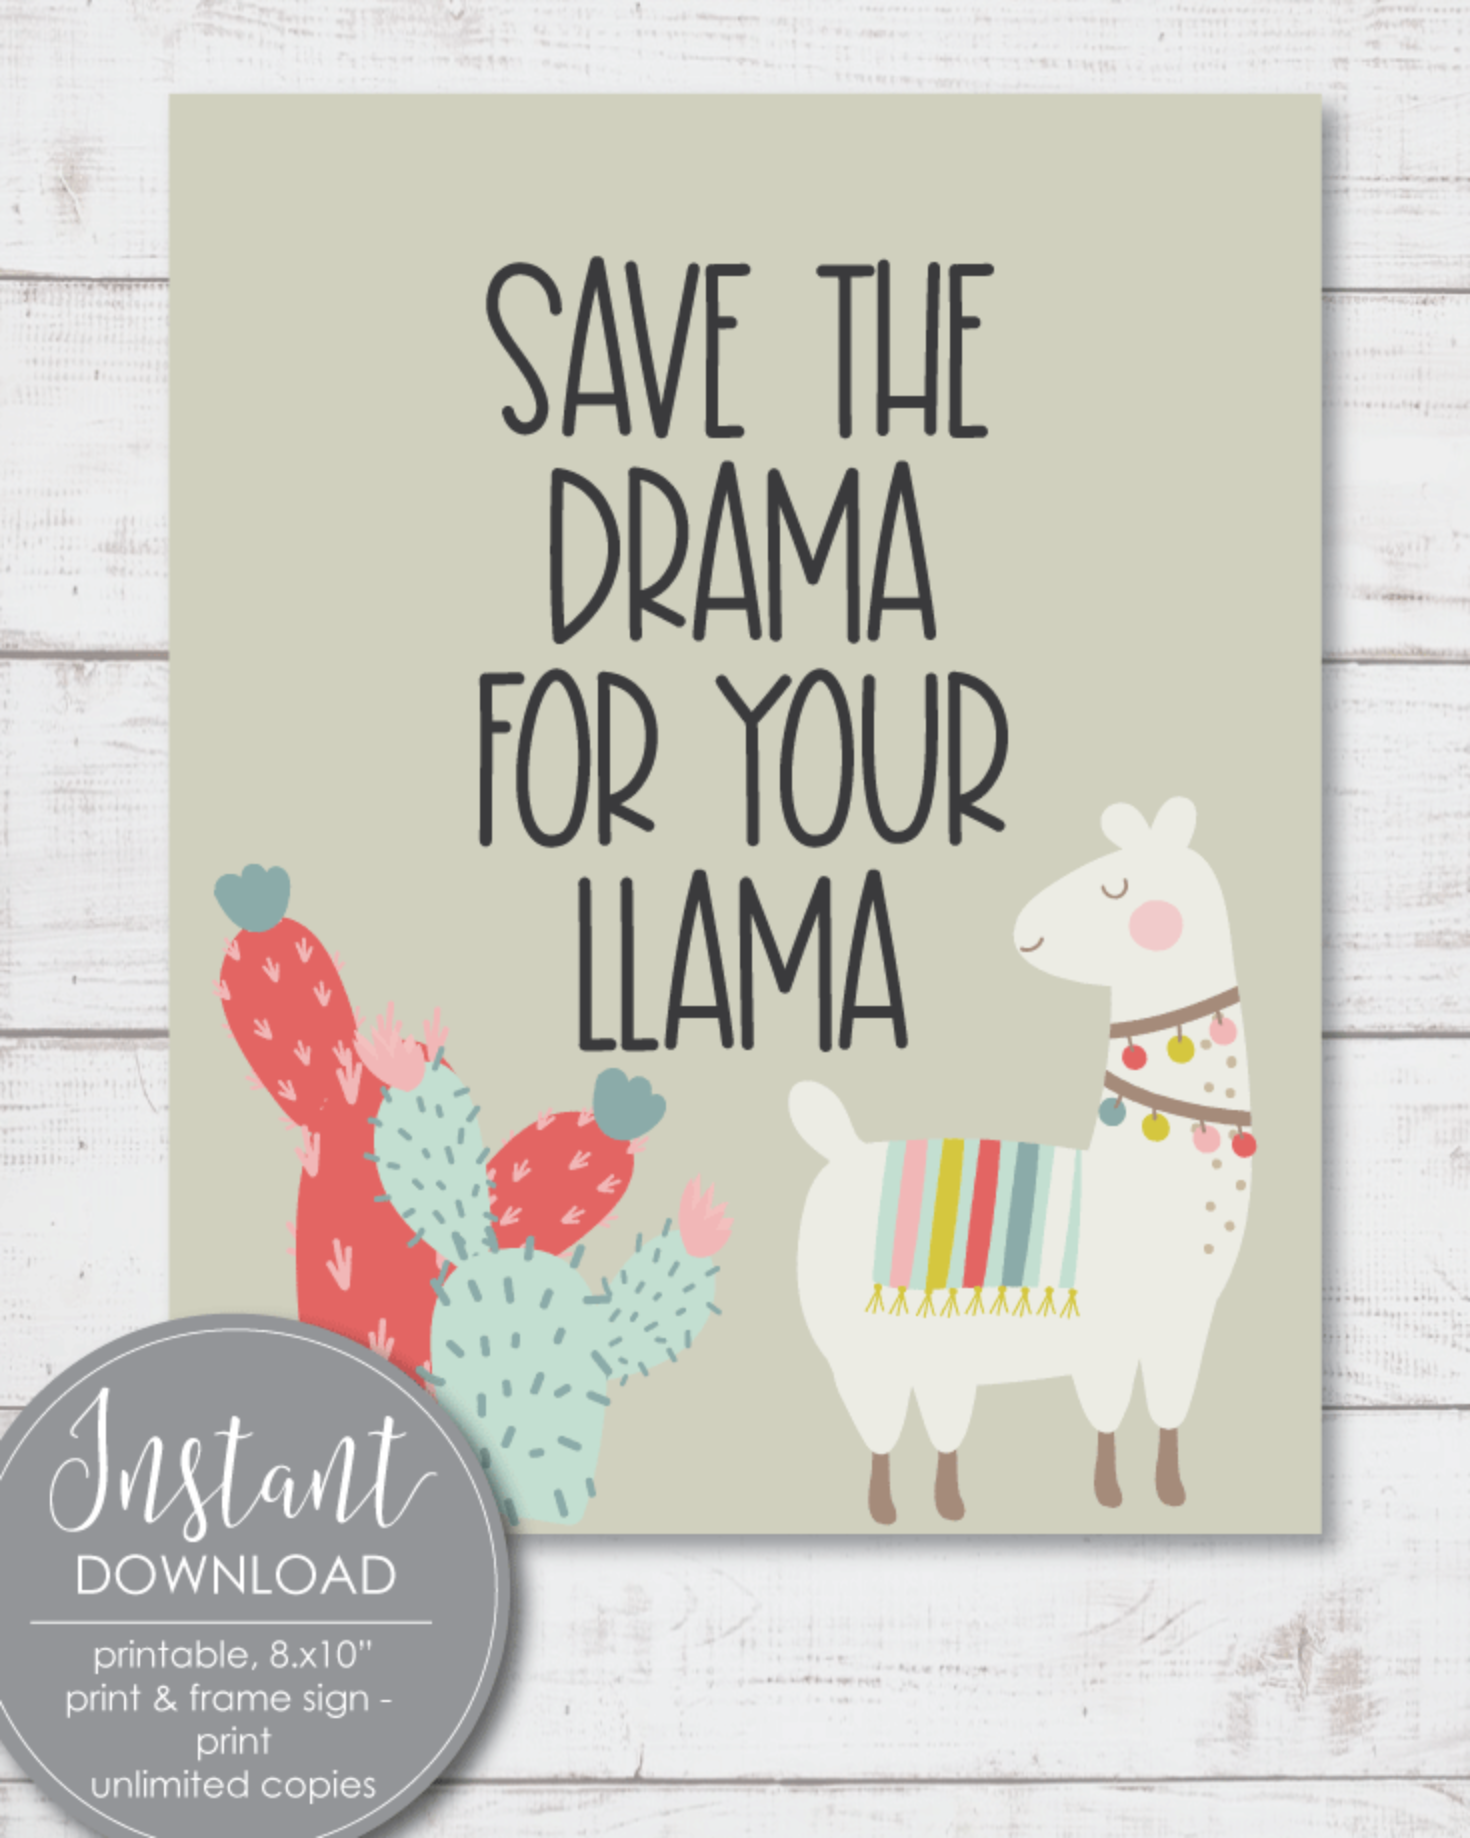 Printable Boho Llama Cactus Sign - Save The Drama For Your Llama, 8x10